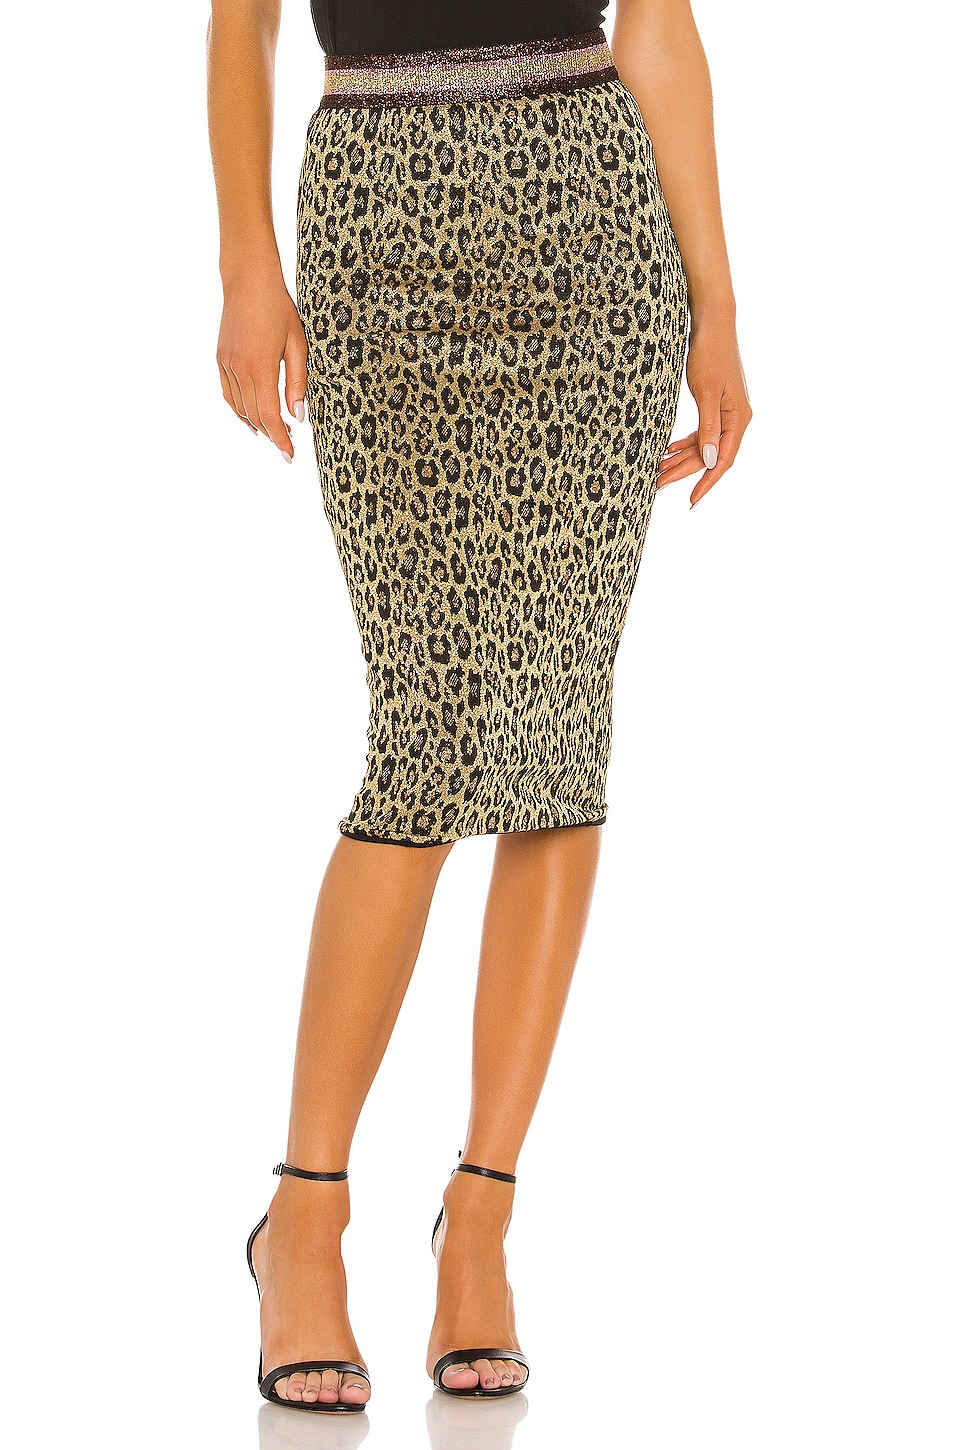 Le Superbe Liza Skirt in Mas Leopard Gold